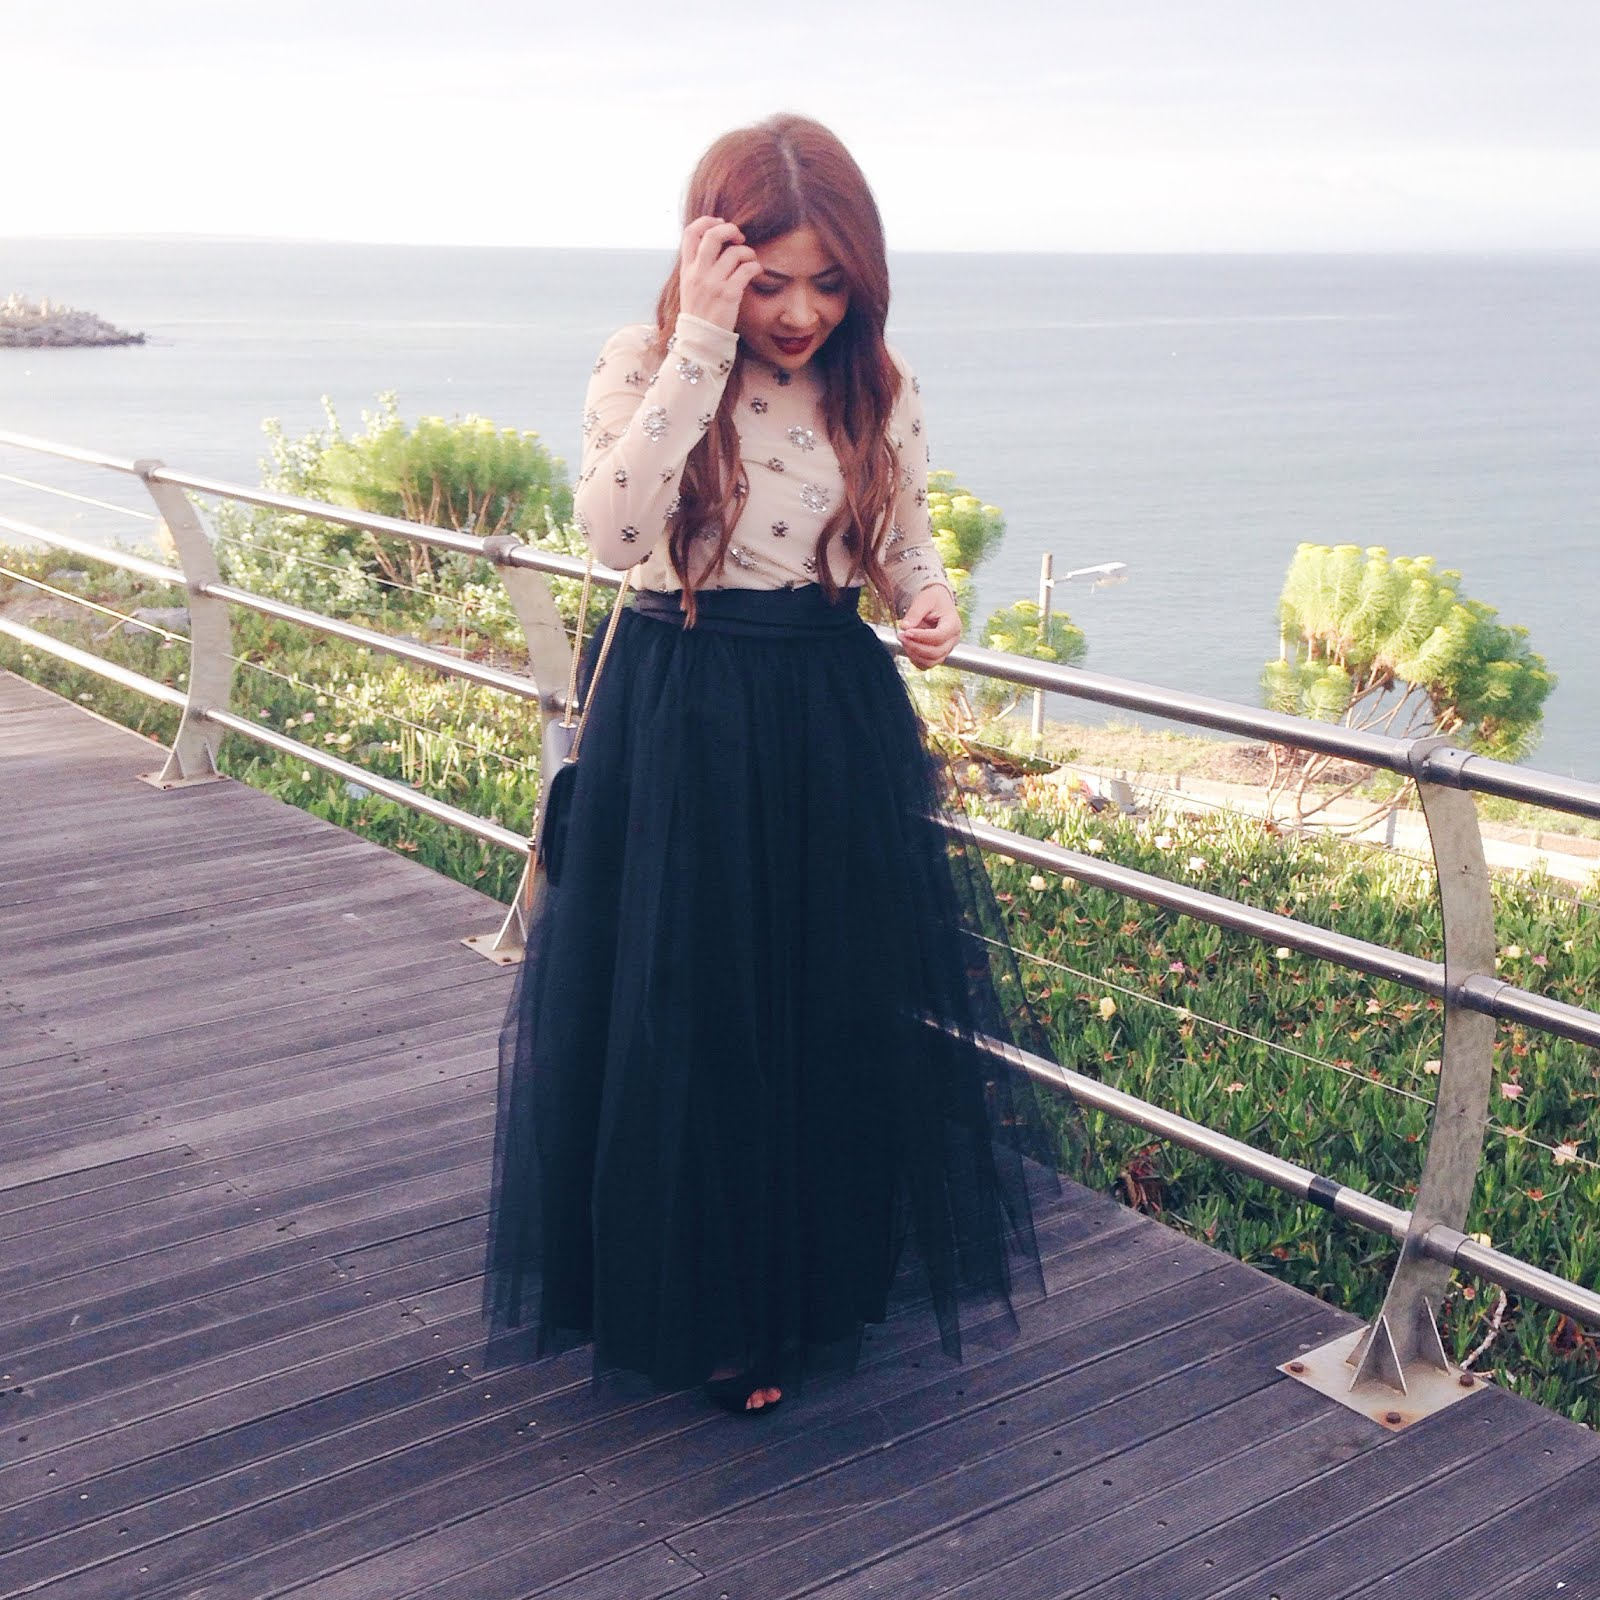 tulle skirt ootd, tulle maxi skirt, black tulle skirt, tulle skirt wedding, ootd wedding muslim, modest fashion blog